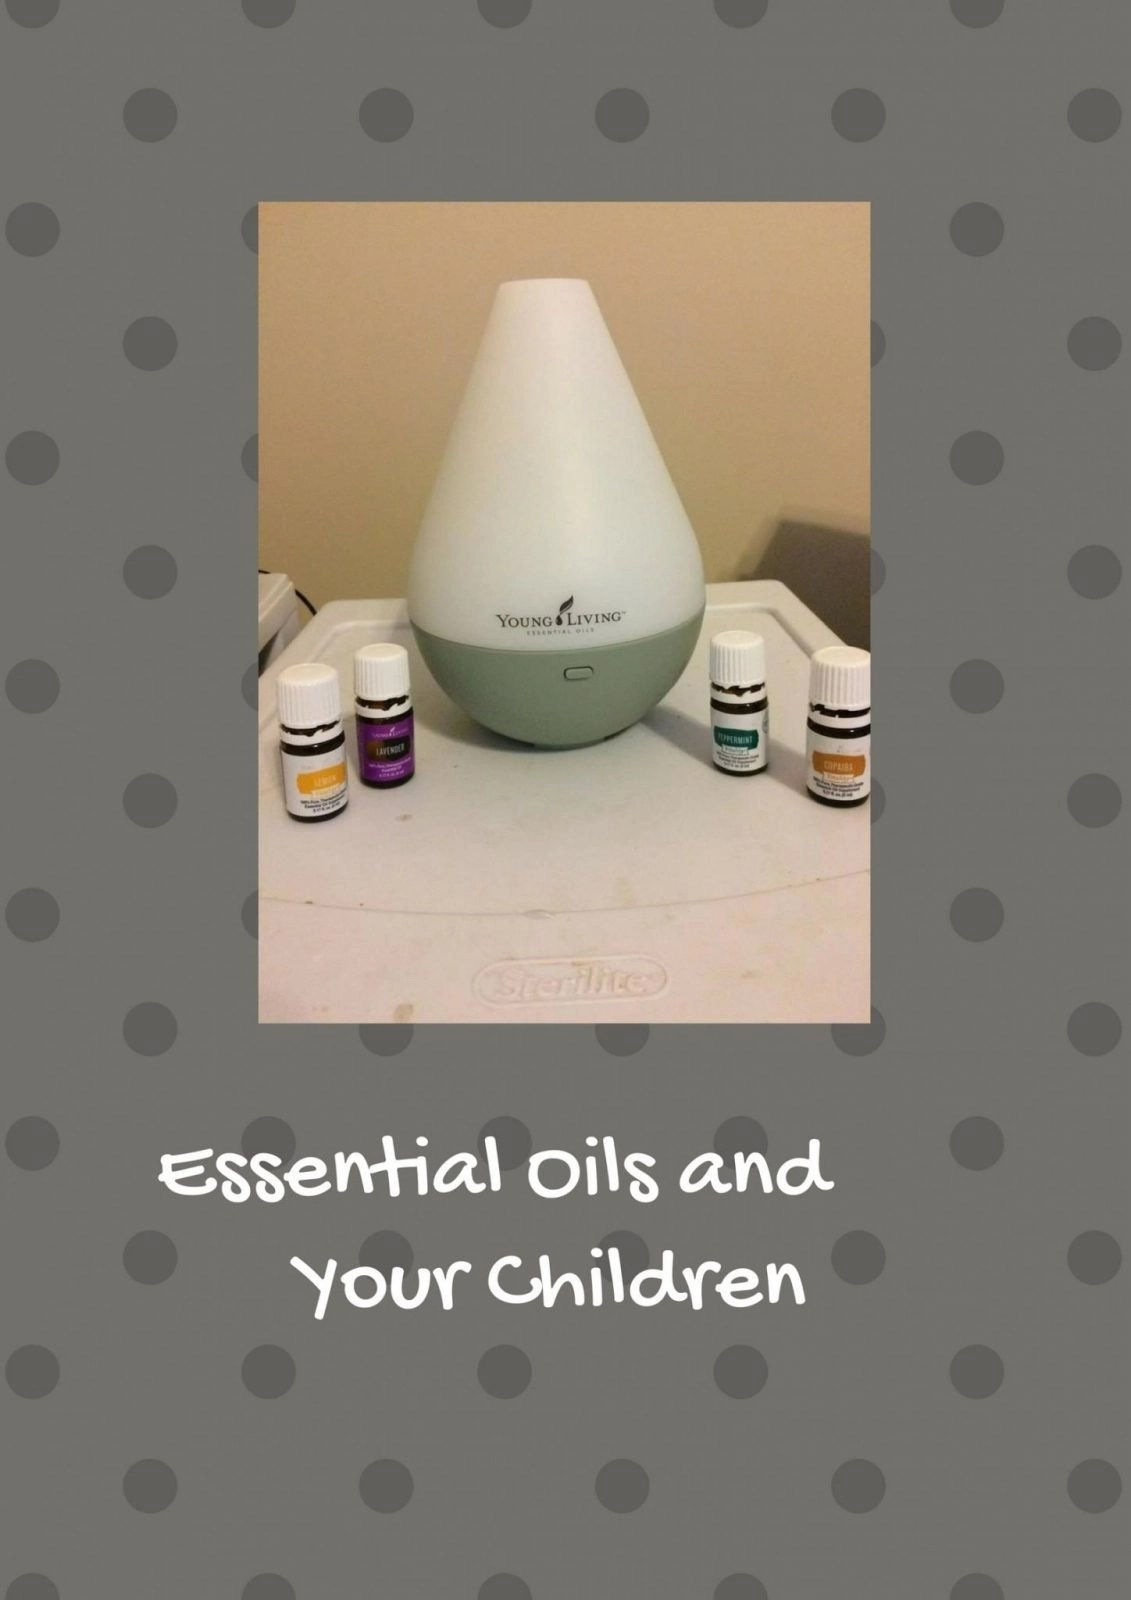 Essential Oils and Your Children